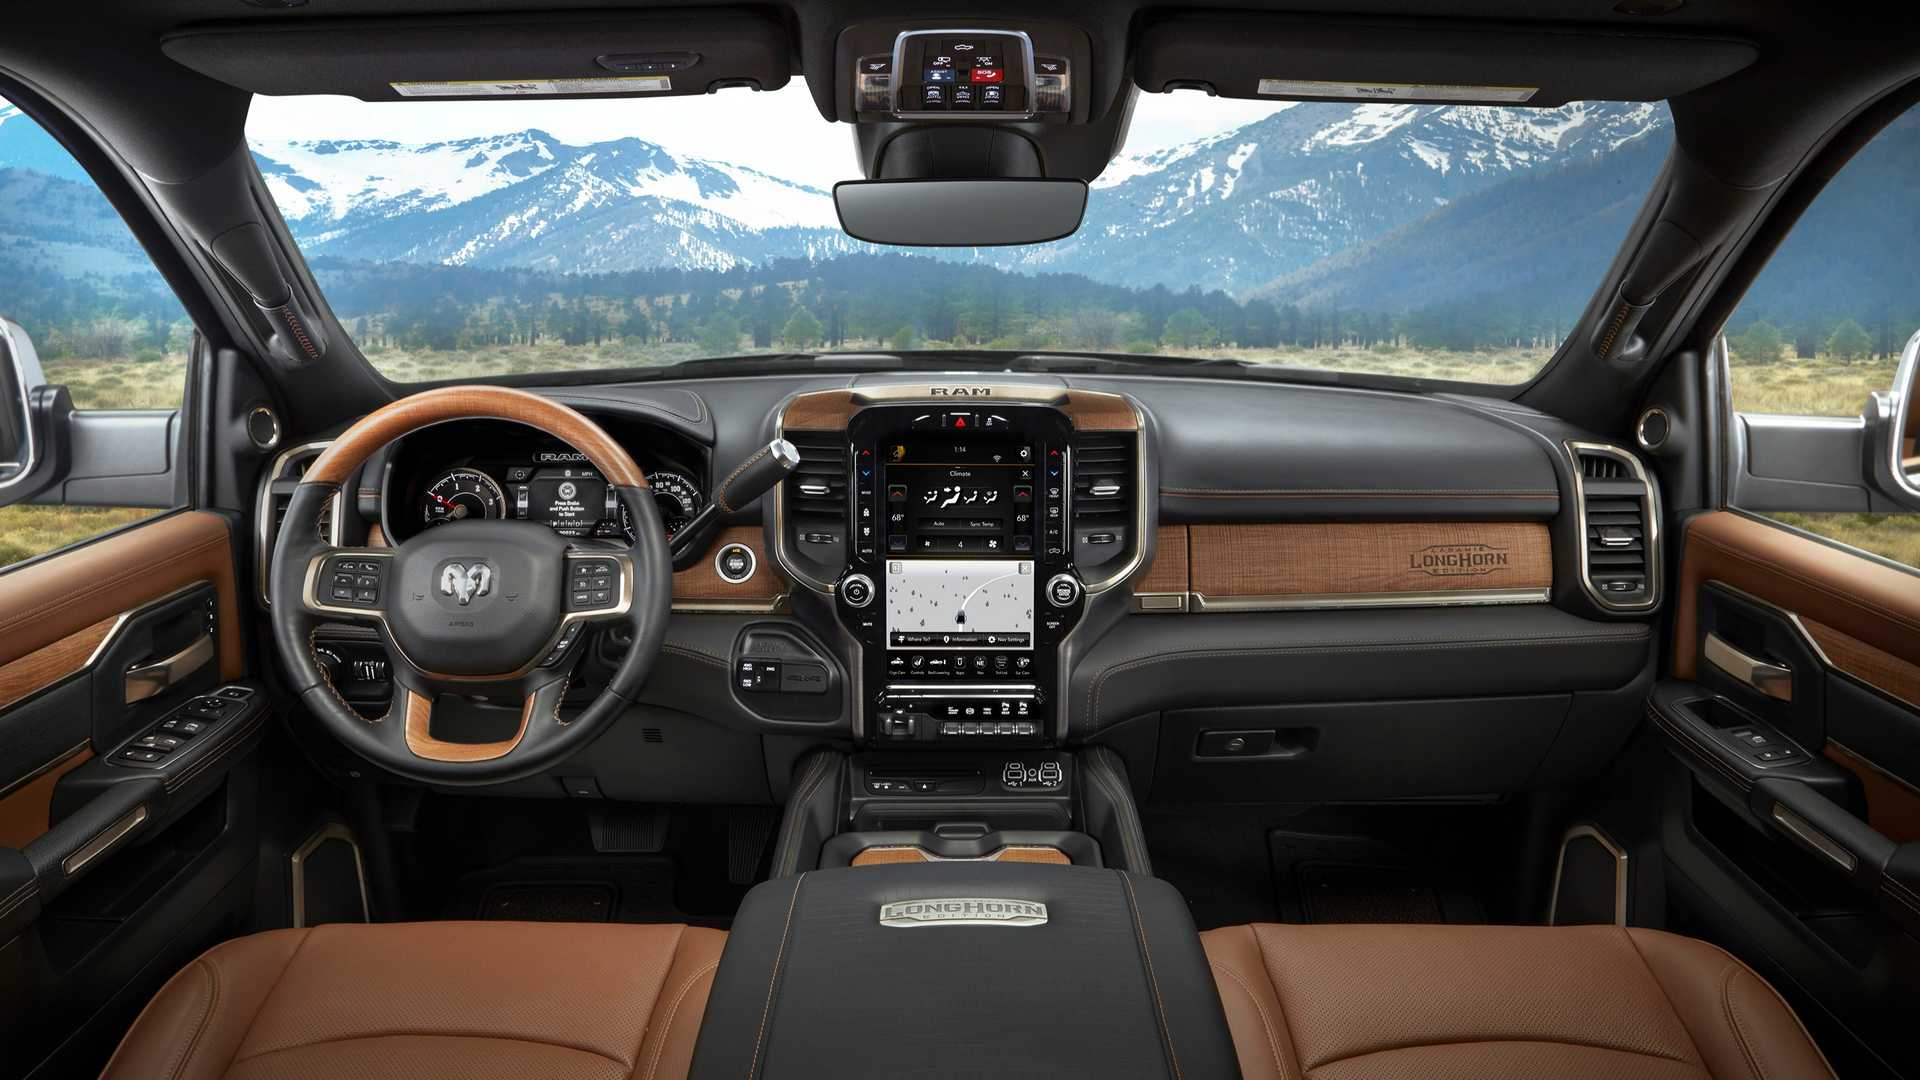 2019 Ram HD Laramie Longhorn Features Real Wood, Leather ...